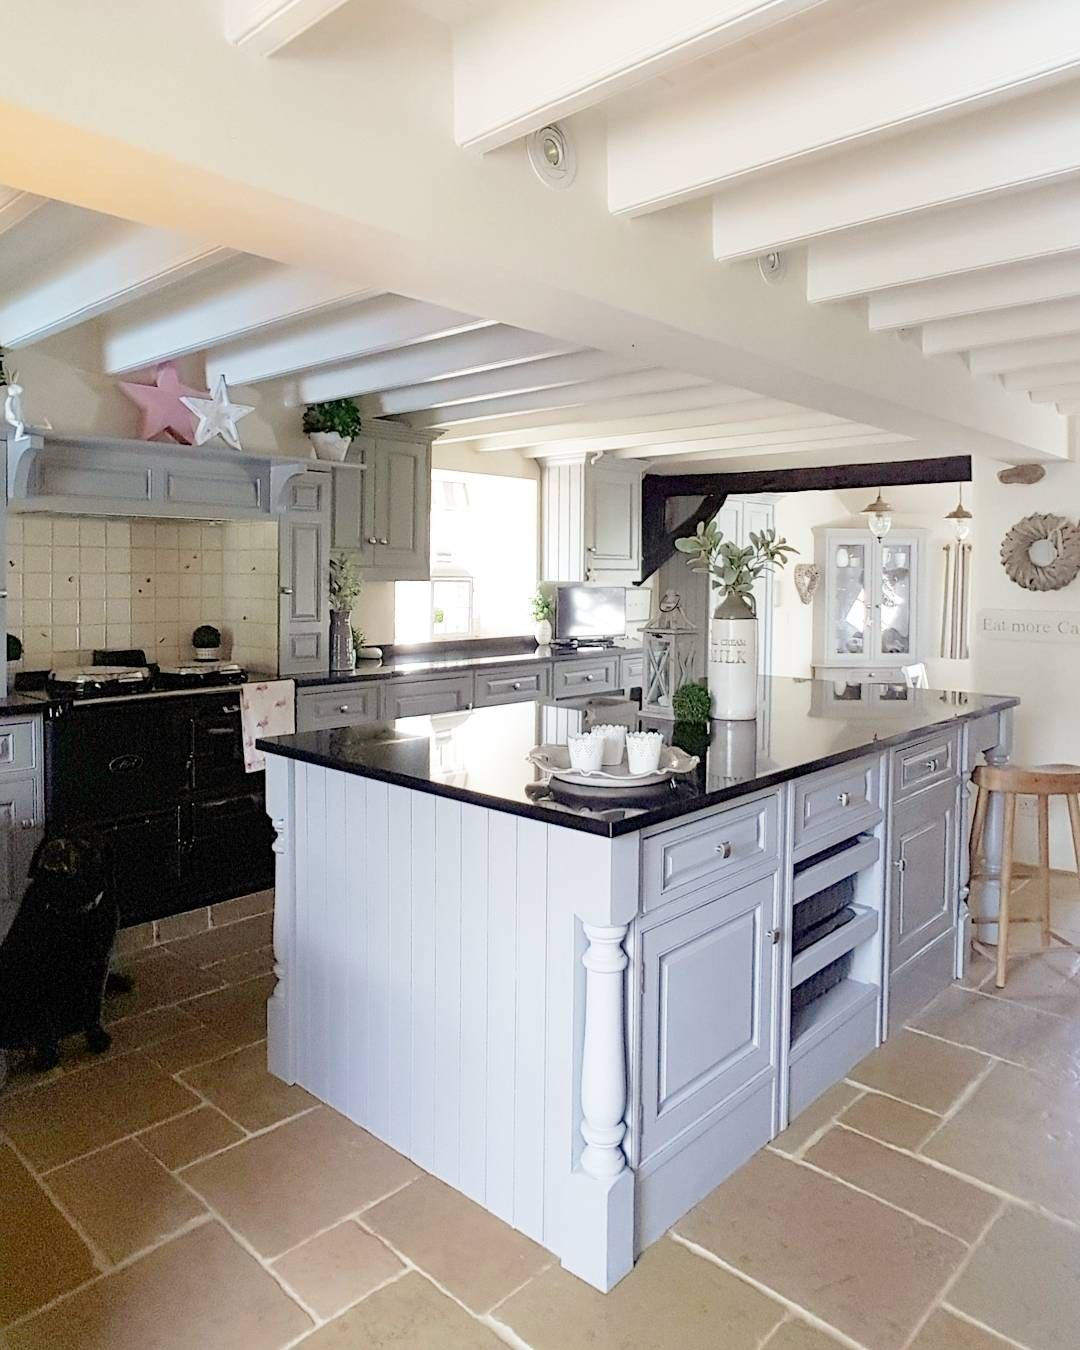 bespoke wooden kitchen shadow grey pewter aga home accessories bespoke wooden kitchen shadow grey pewter aga home accessories west barn interiors country